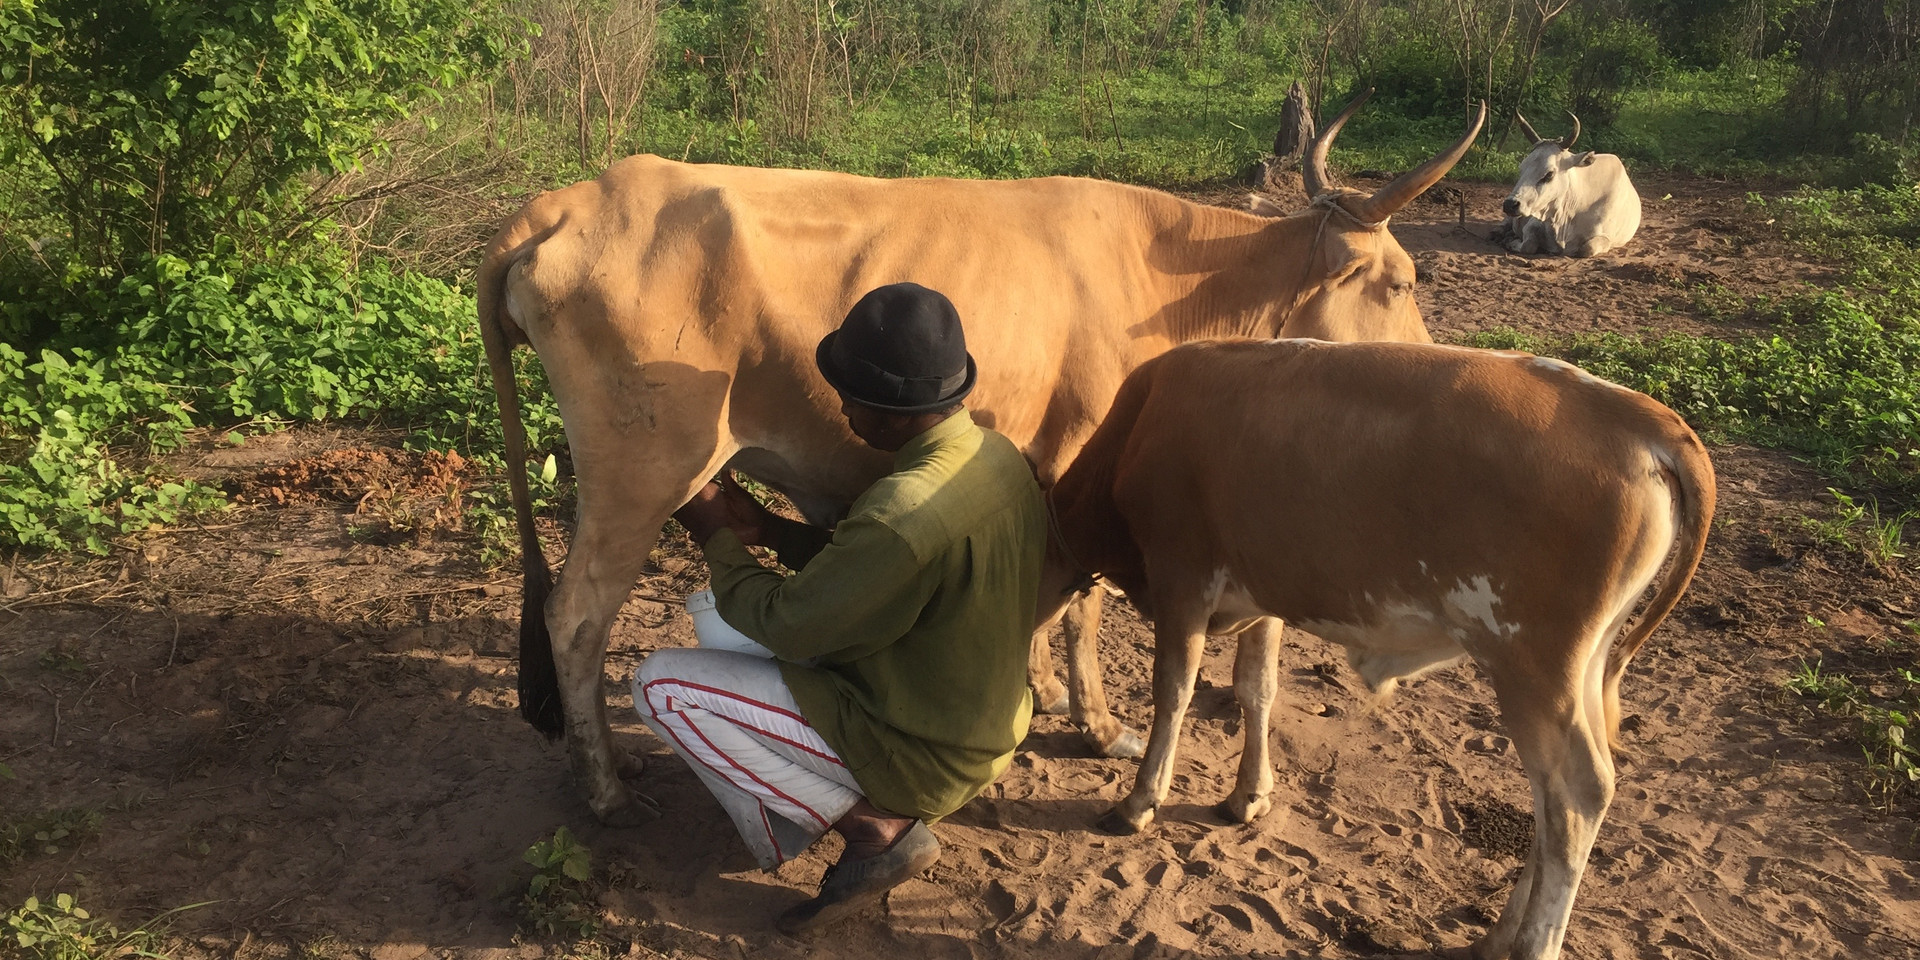 Herdsman milking cow in the morning with her weaning calf nearby (The Gambia, 2016). Photo by J. Washabaugh